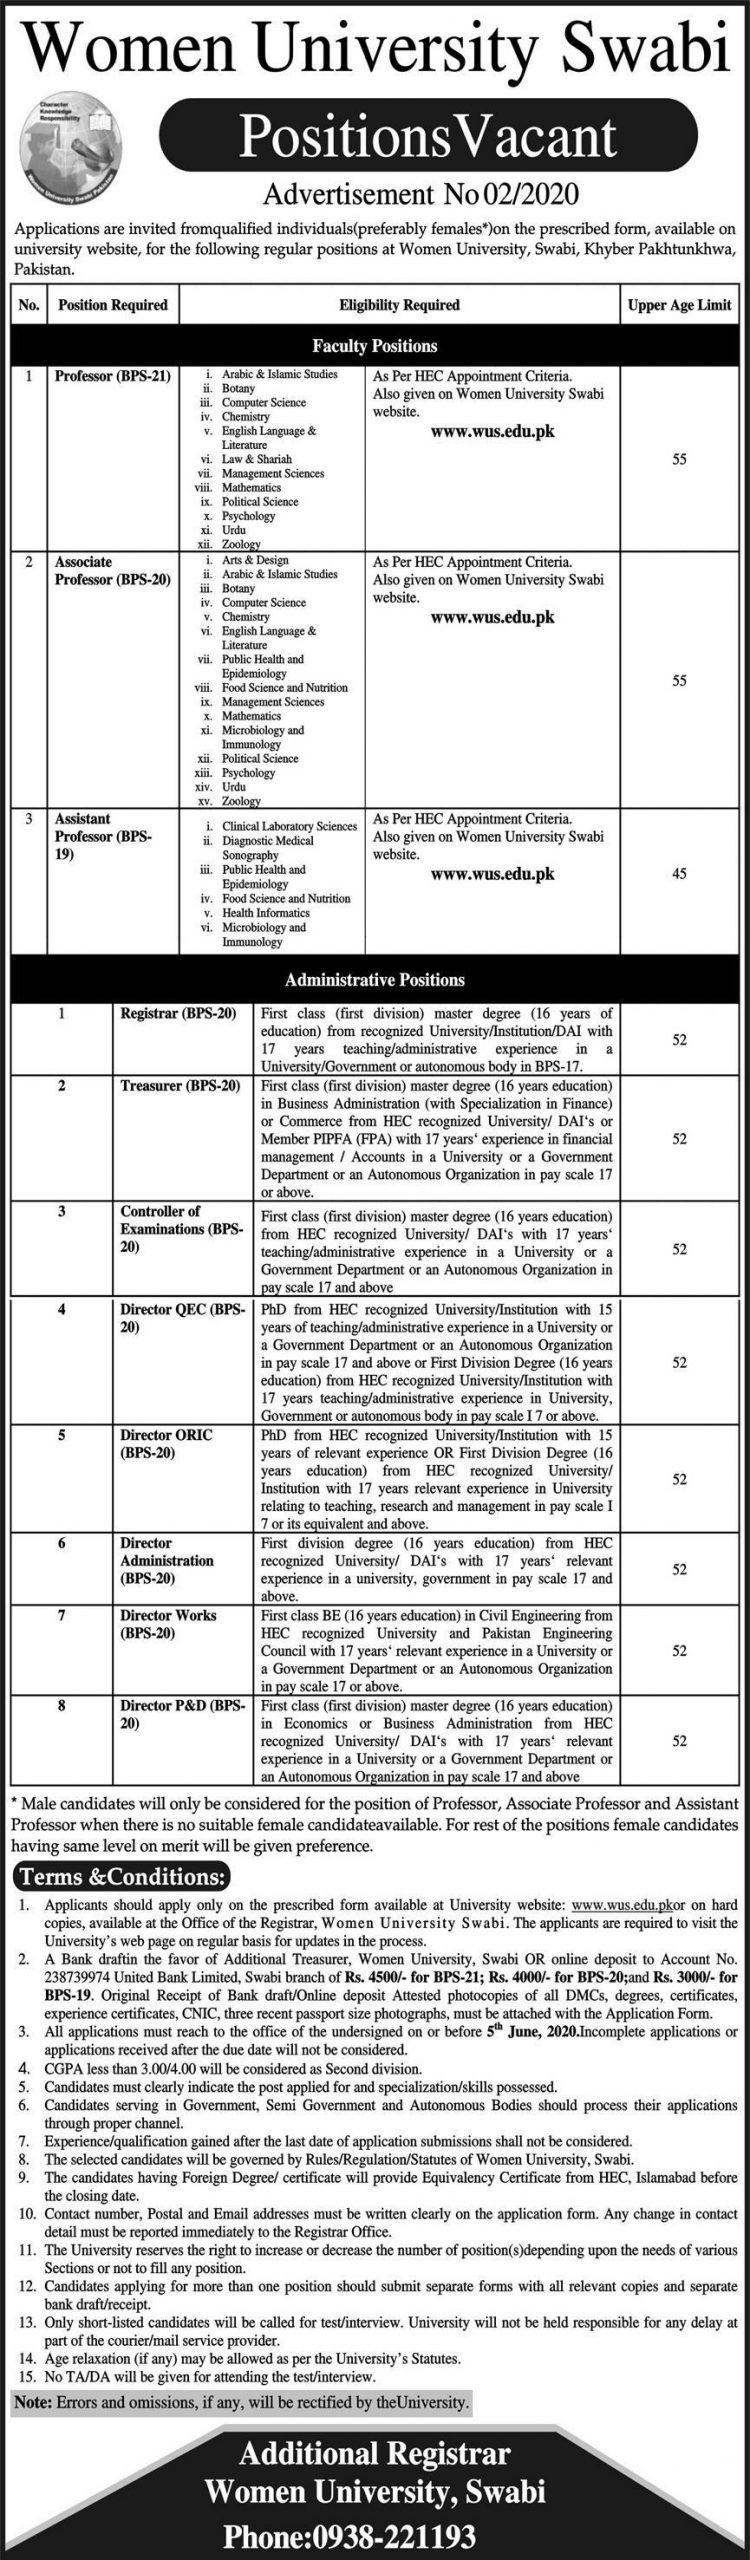 Women University Swabi, Swabi Positions Vacant Advertisement No 02/2020